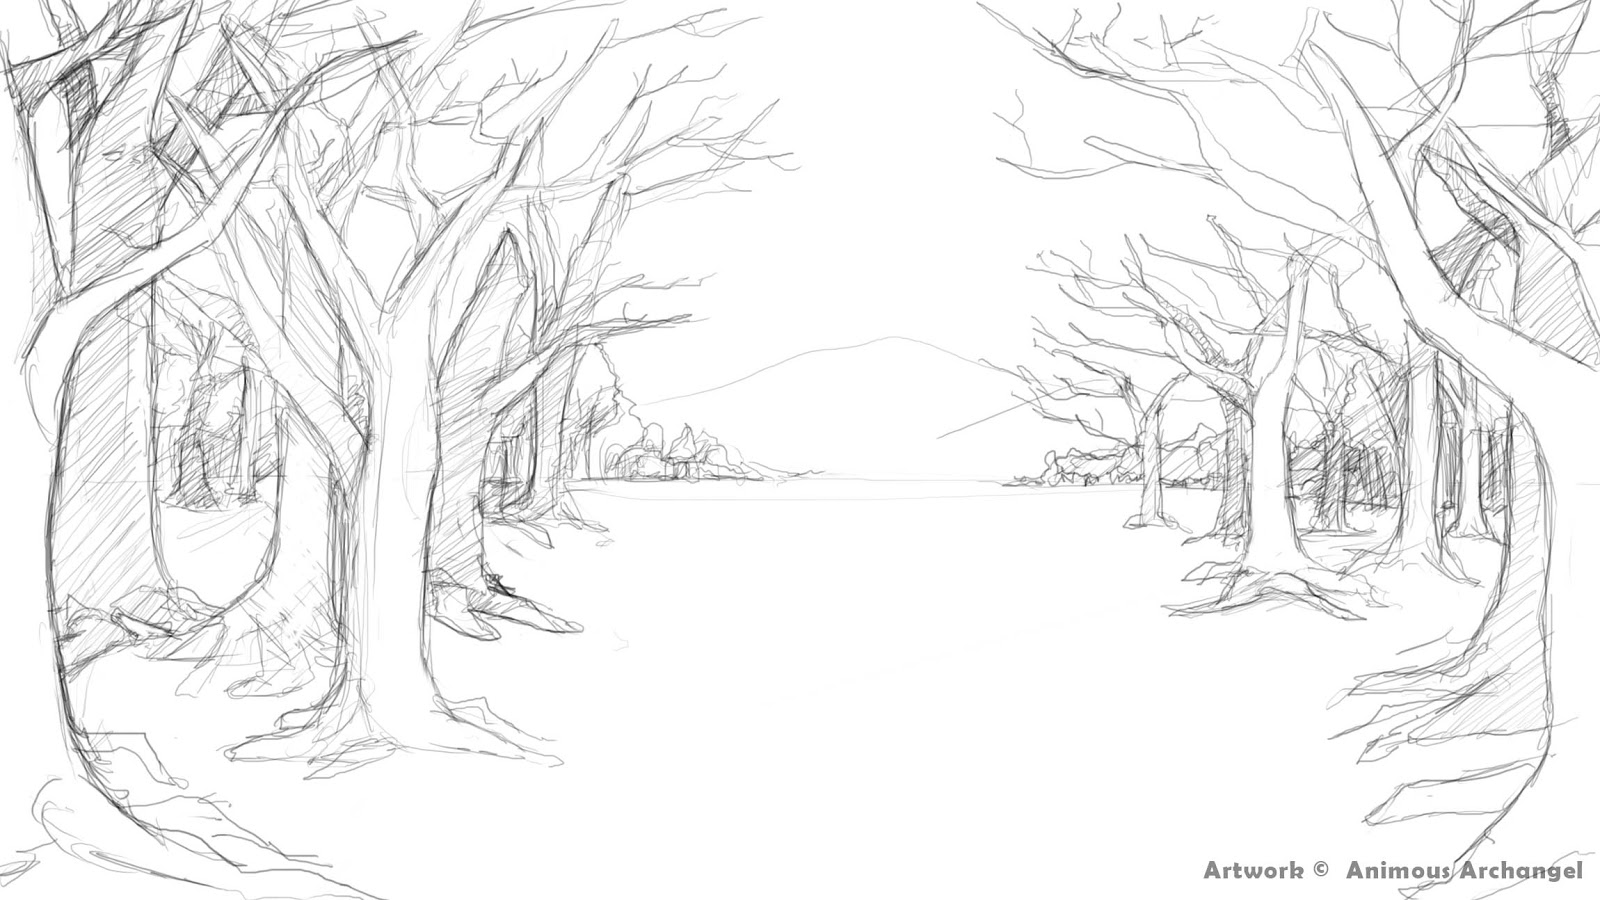 First, I sketch down the forest that I have in mind.